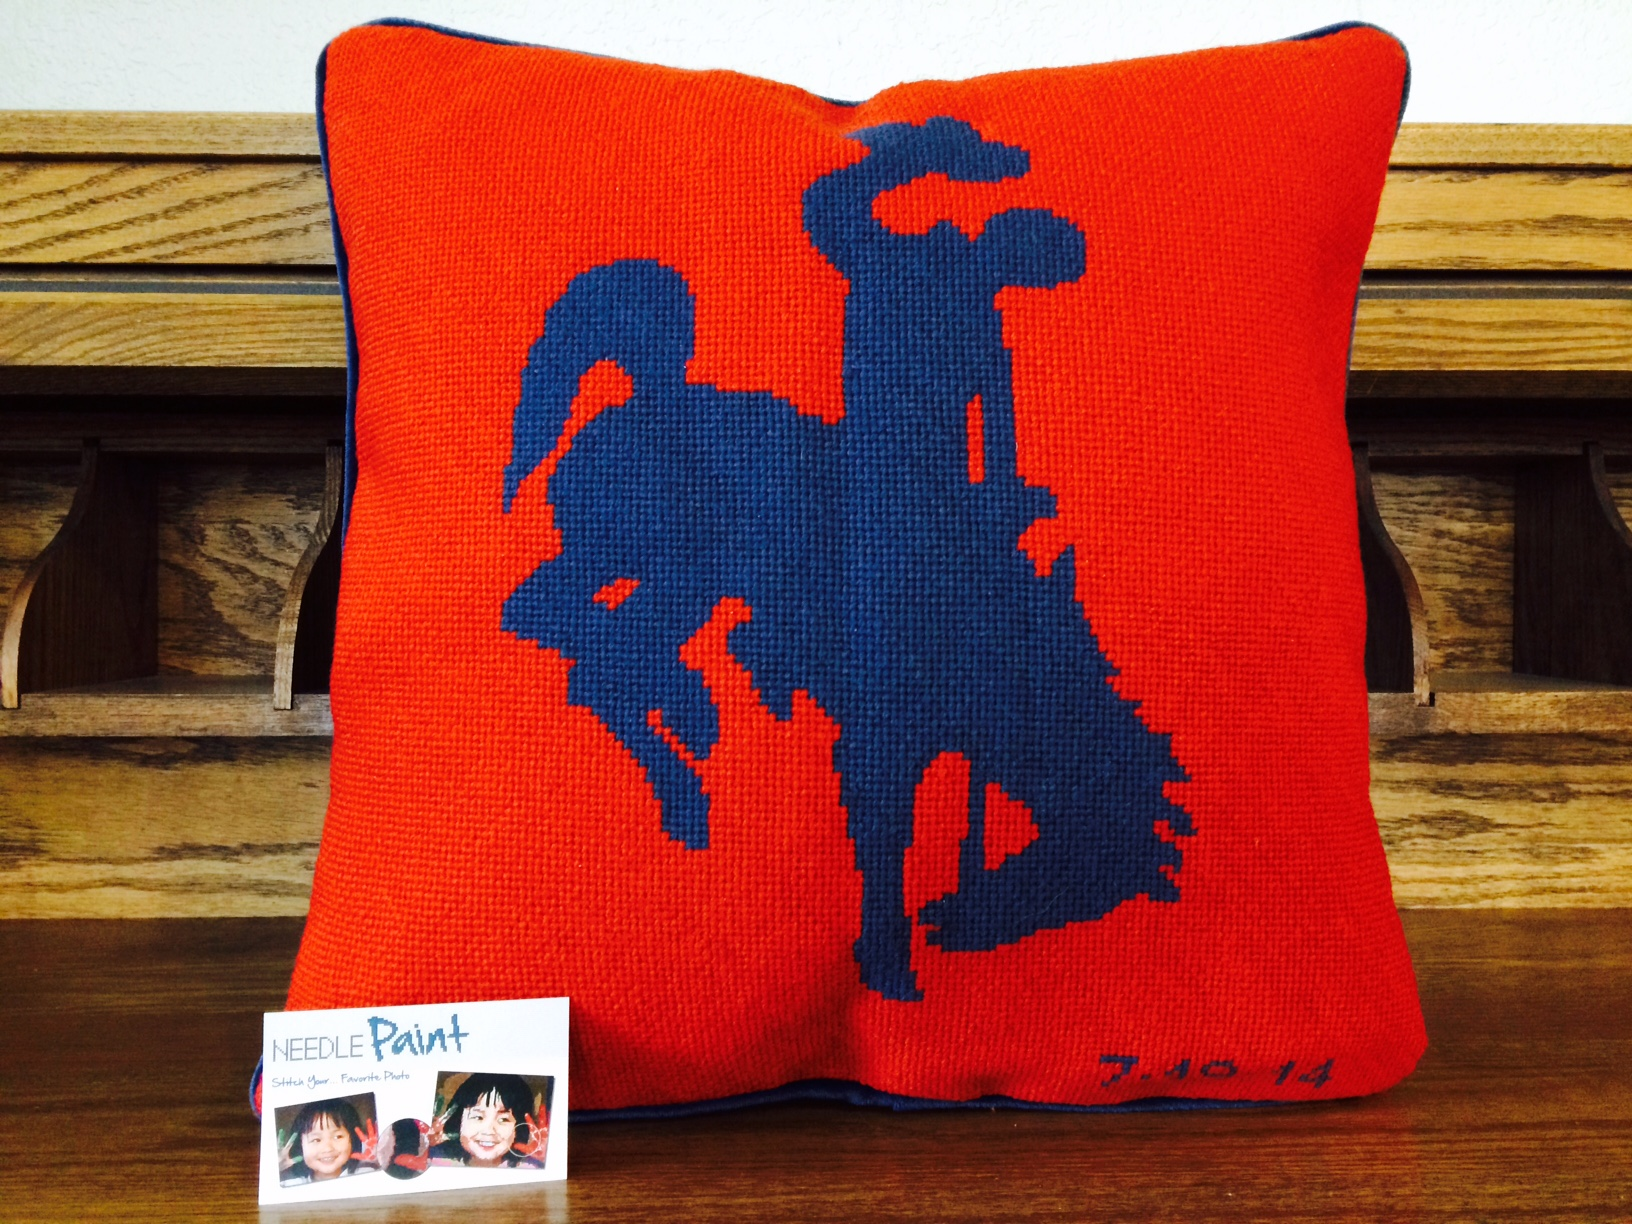 Jackson Hole Needlepoint Pillow